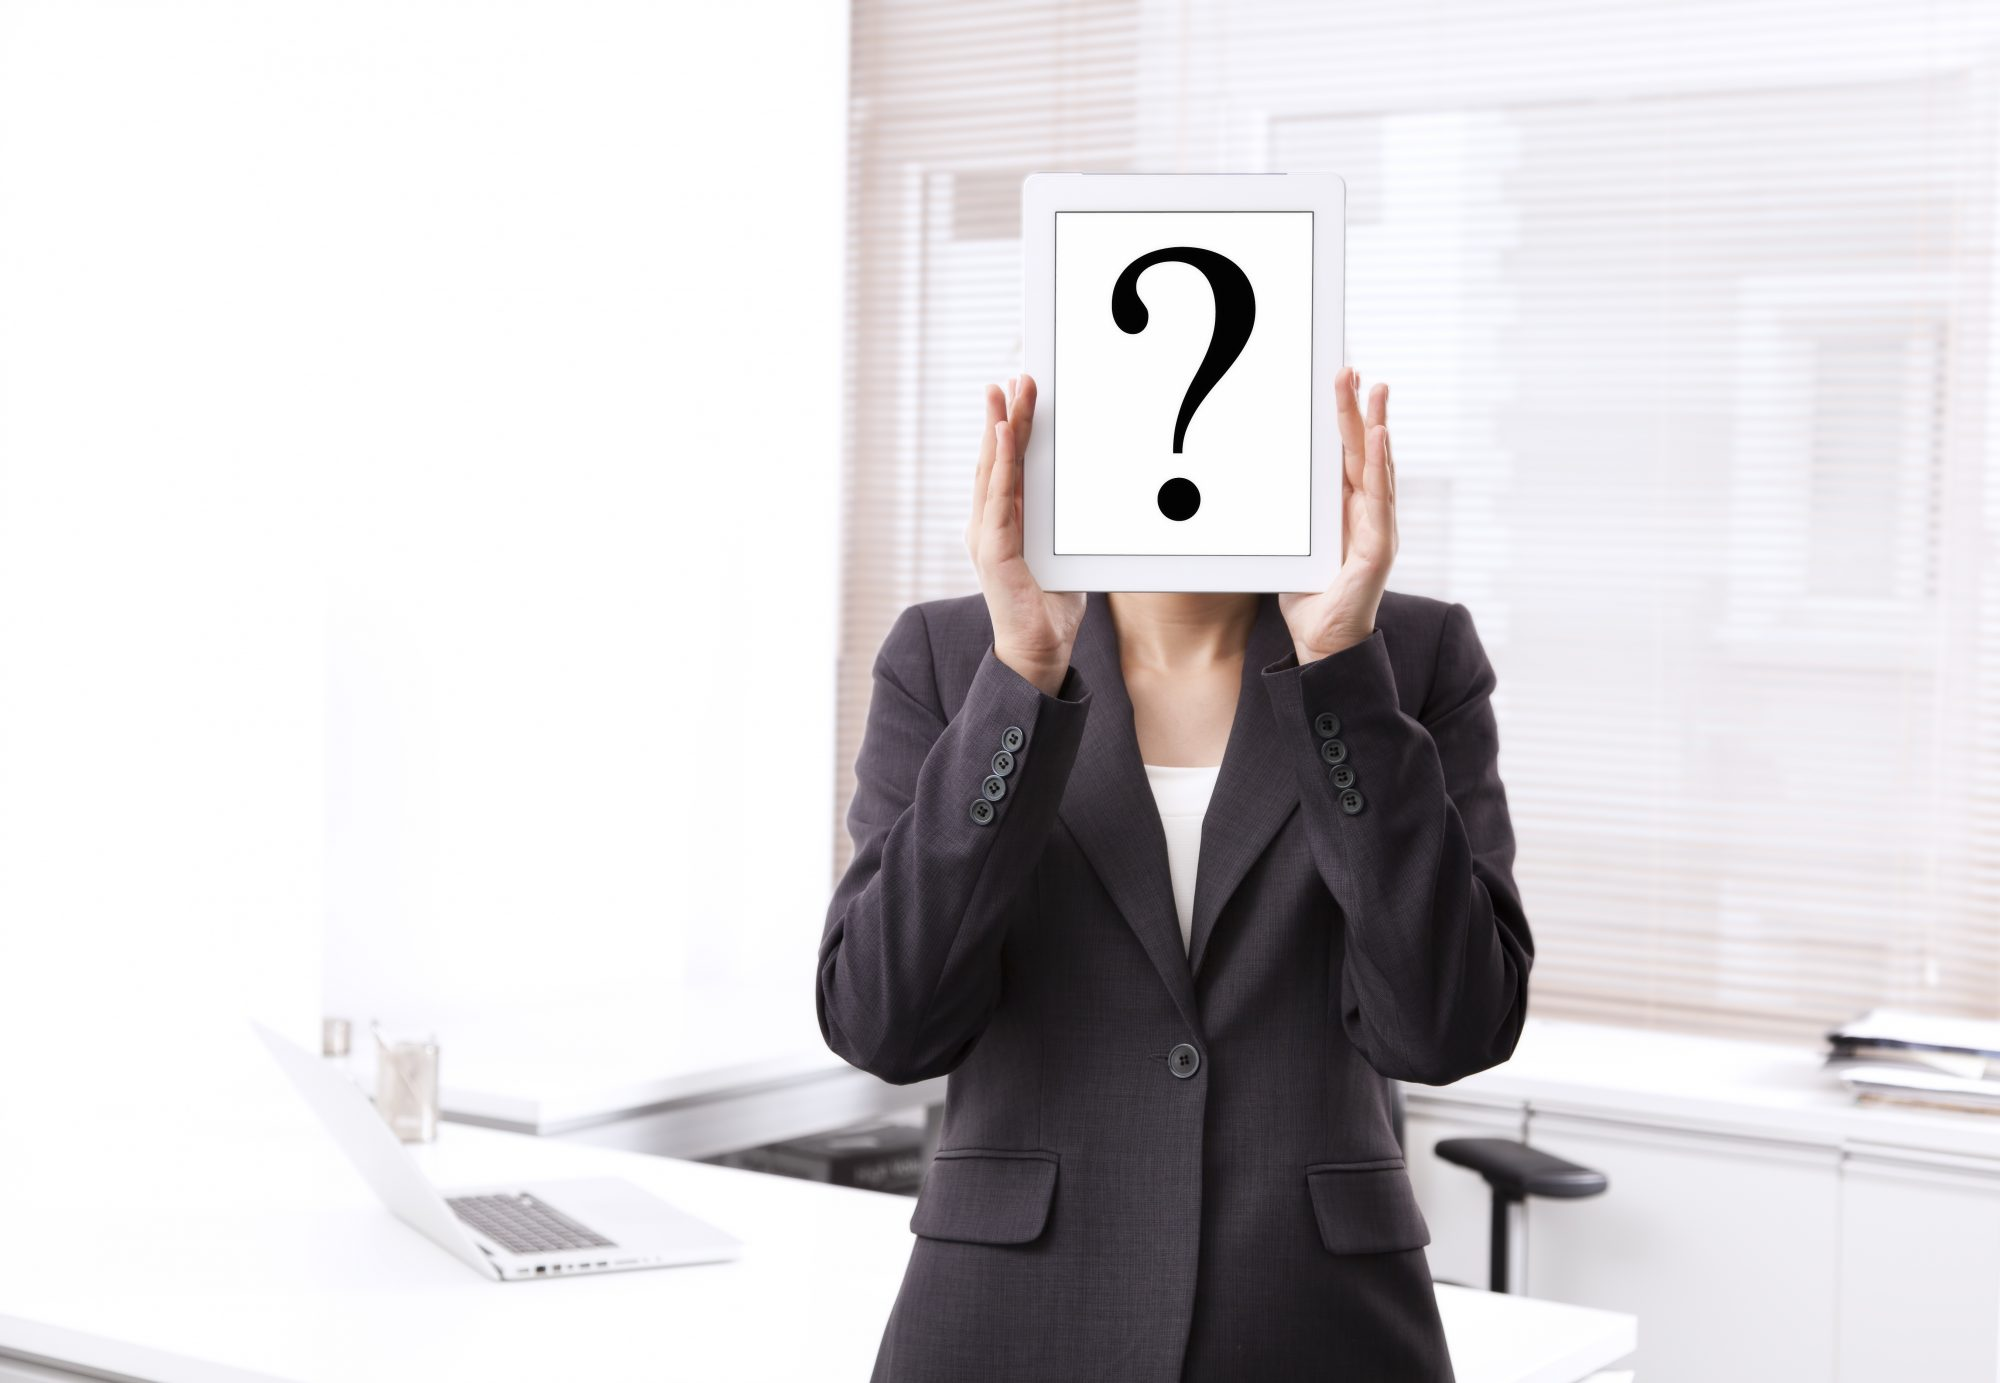 This 'Easy' Question Is One of the Hardest to Answer in a Job Interview